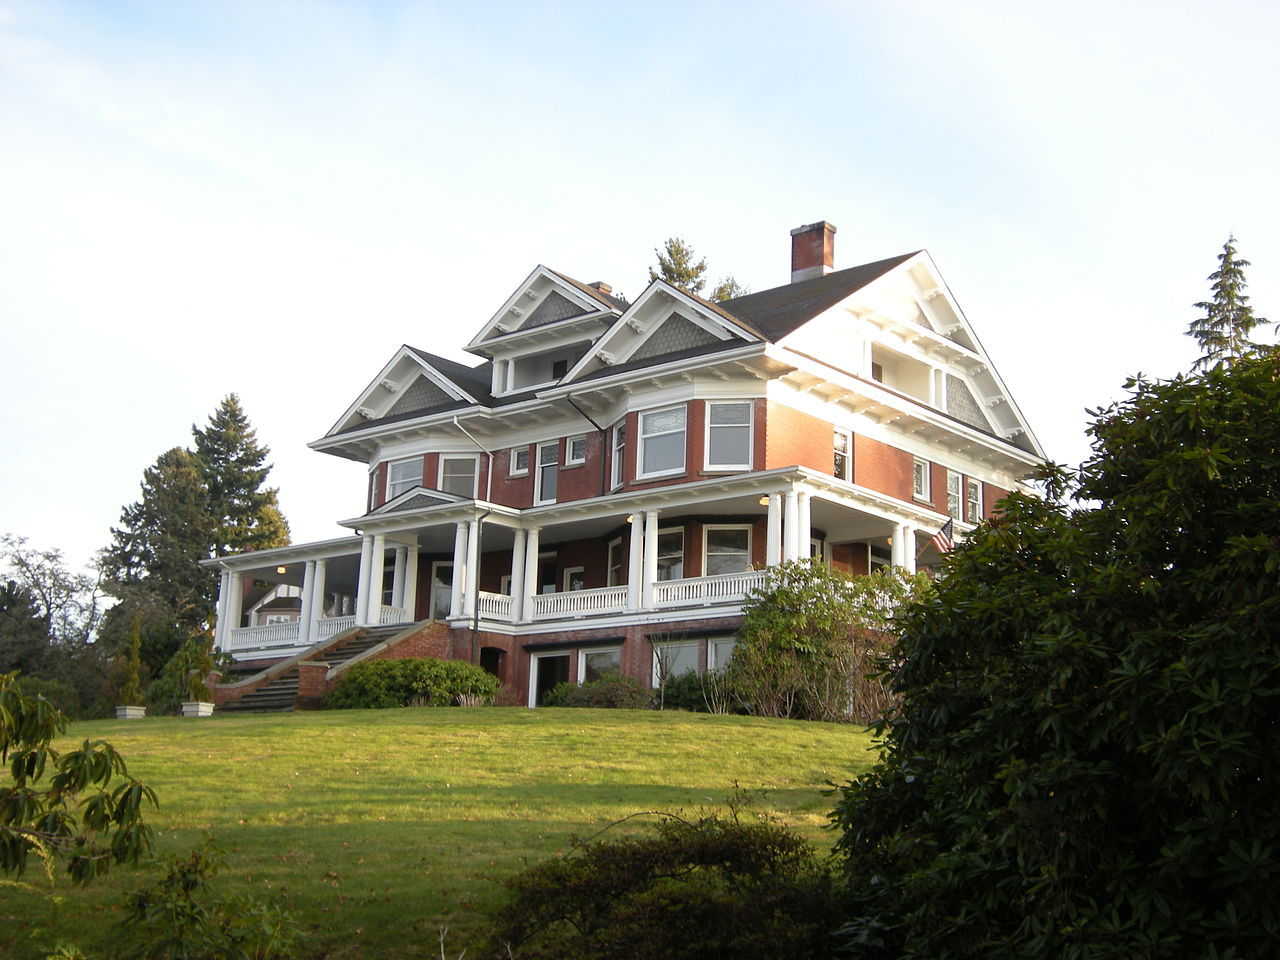 The Ruckers move into their new mansion in Everett, whose rapid growth they have helped promote, in the summer of 1905.